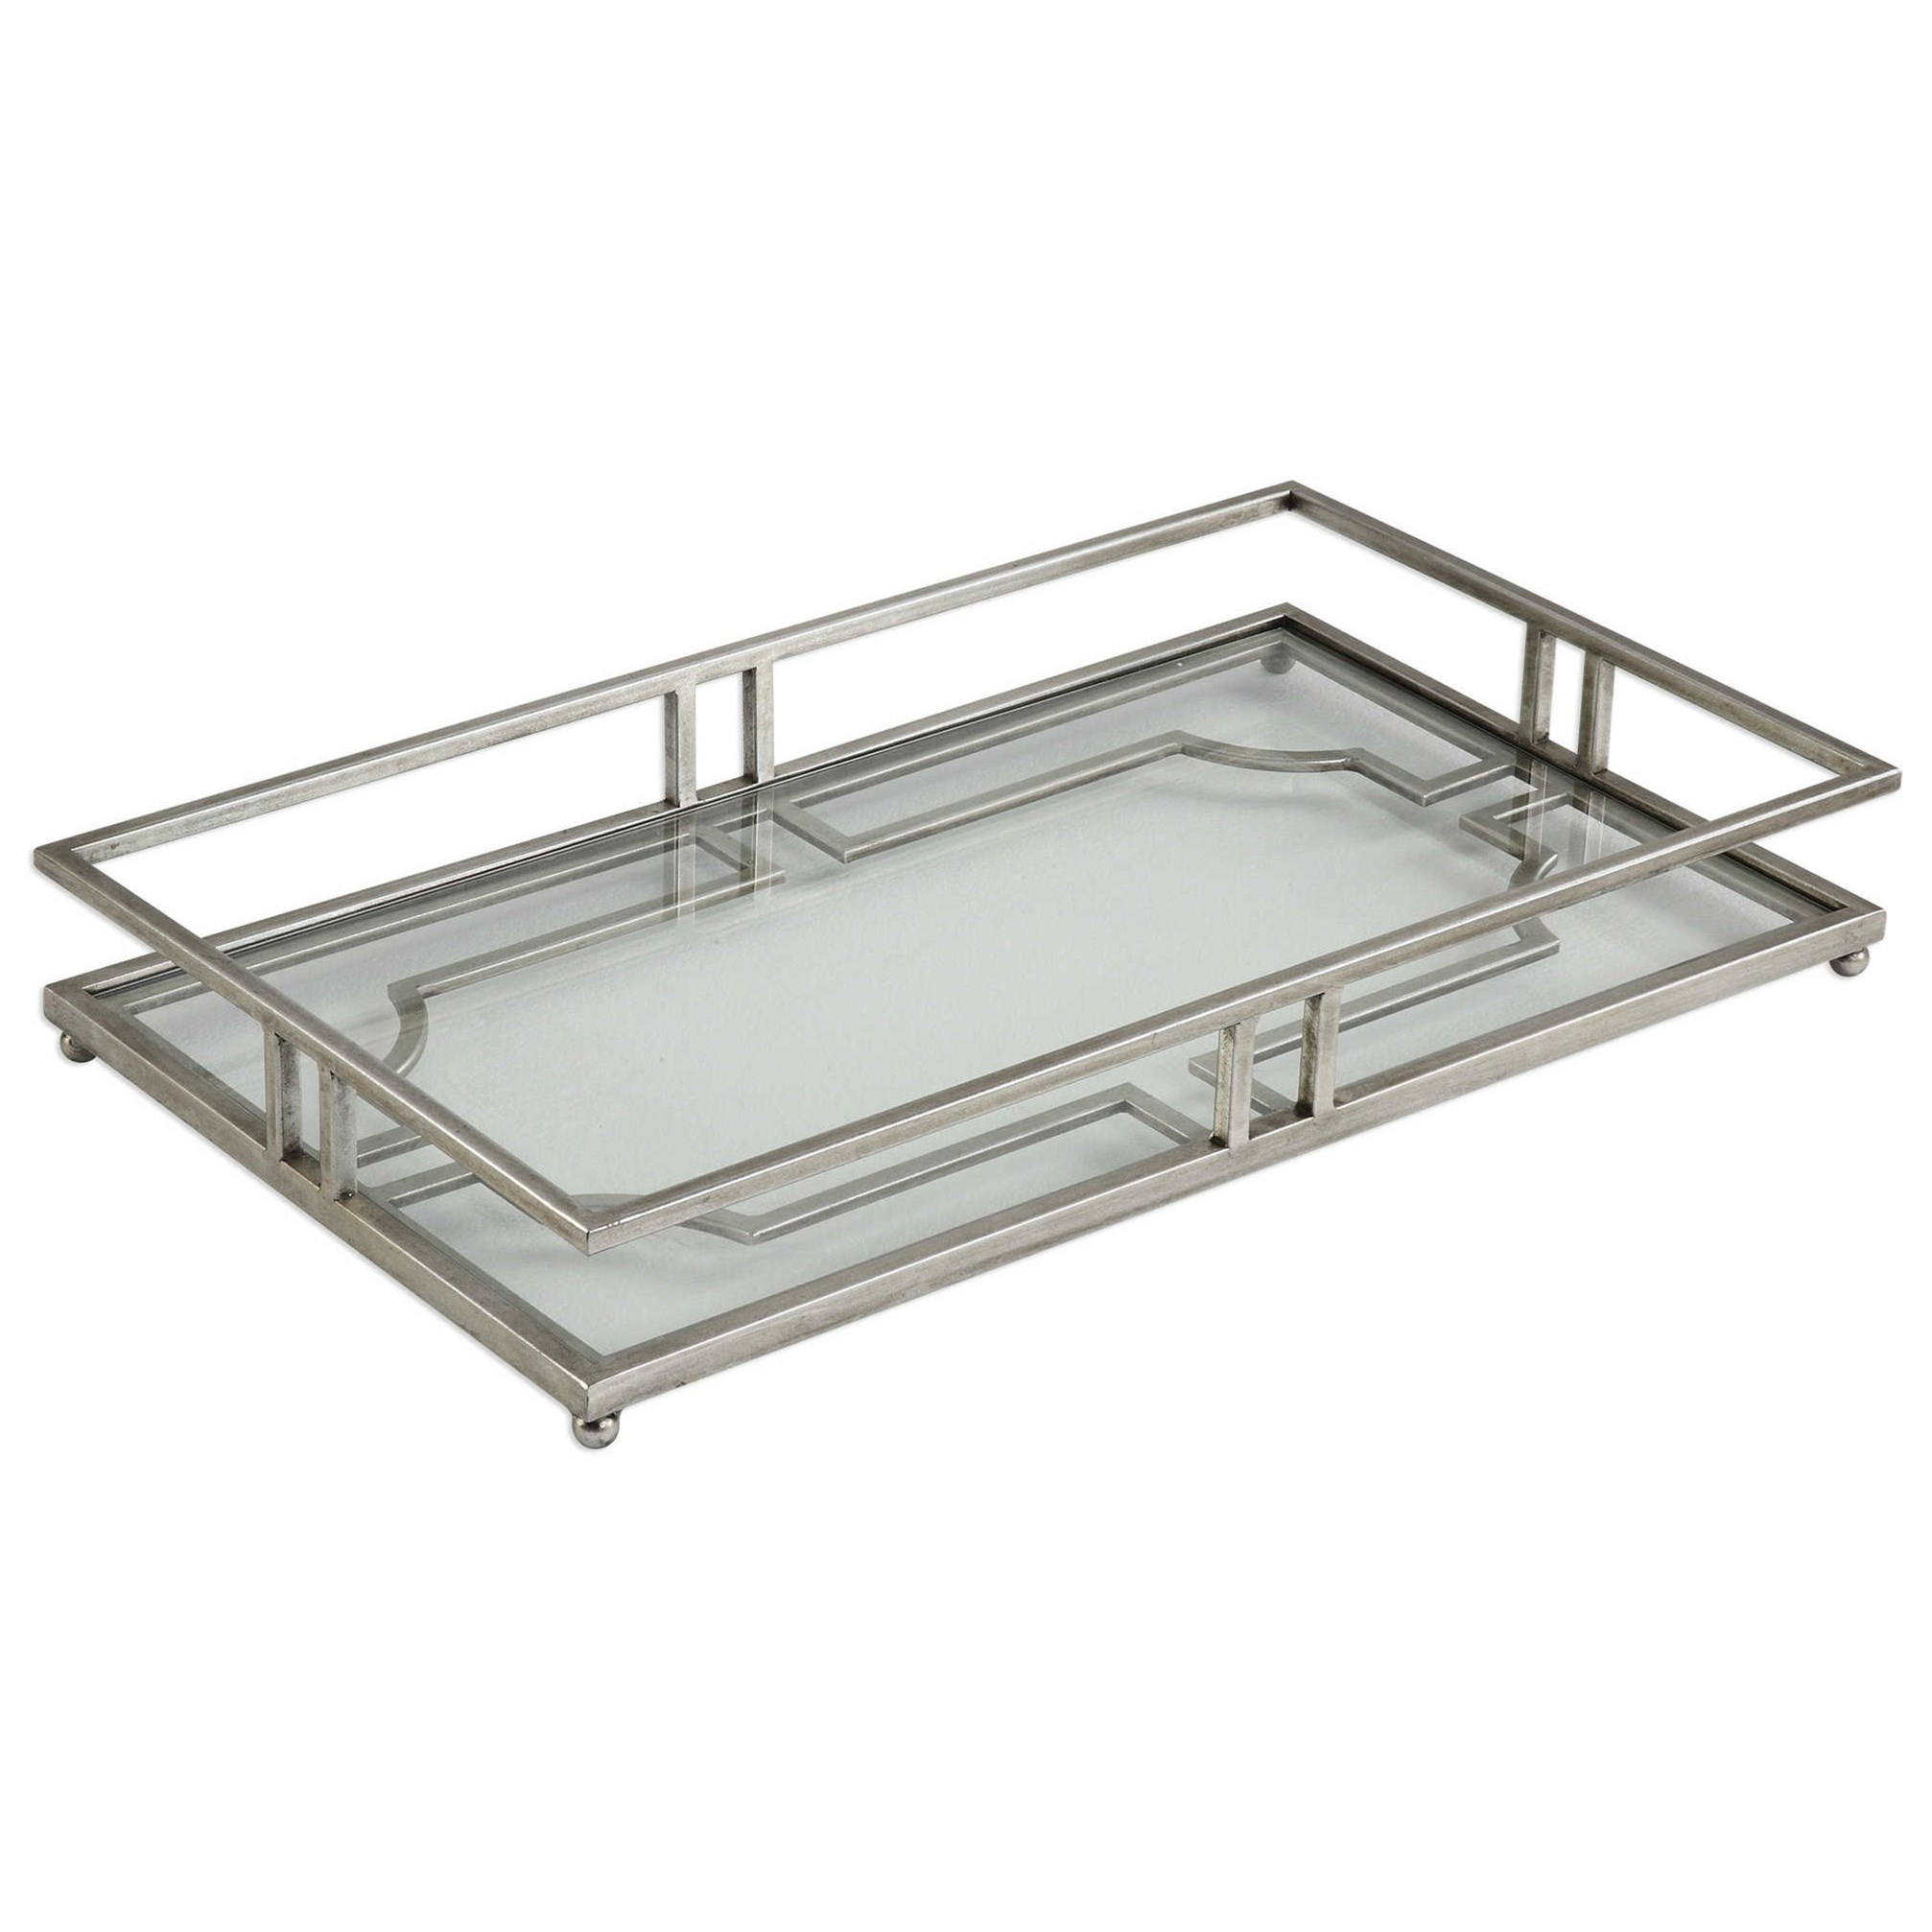 Accessories Rafaela Silver Tray by Uttermost at Dunk & Bright Furniture